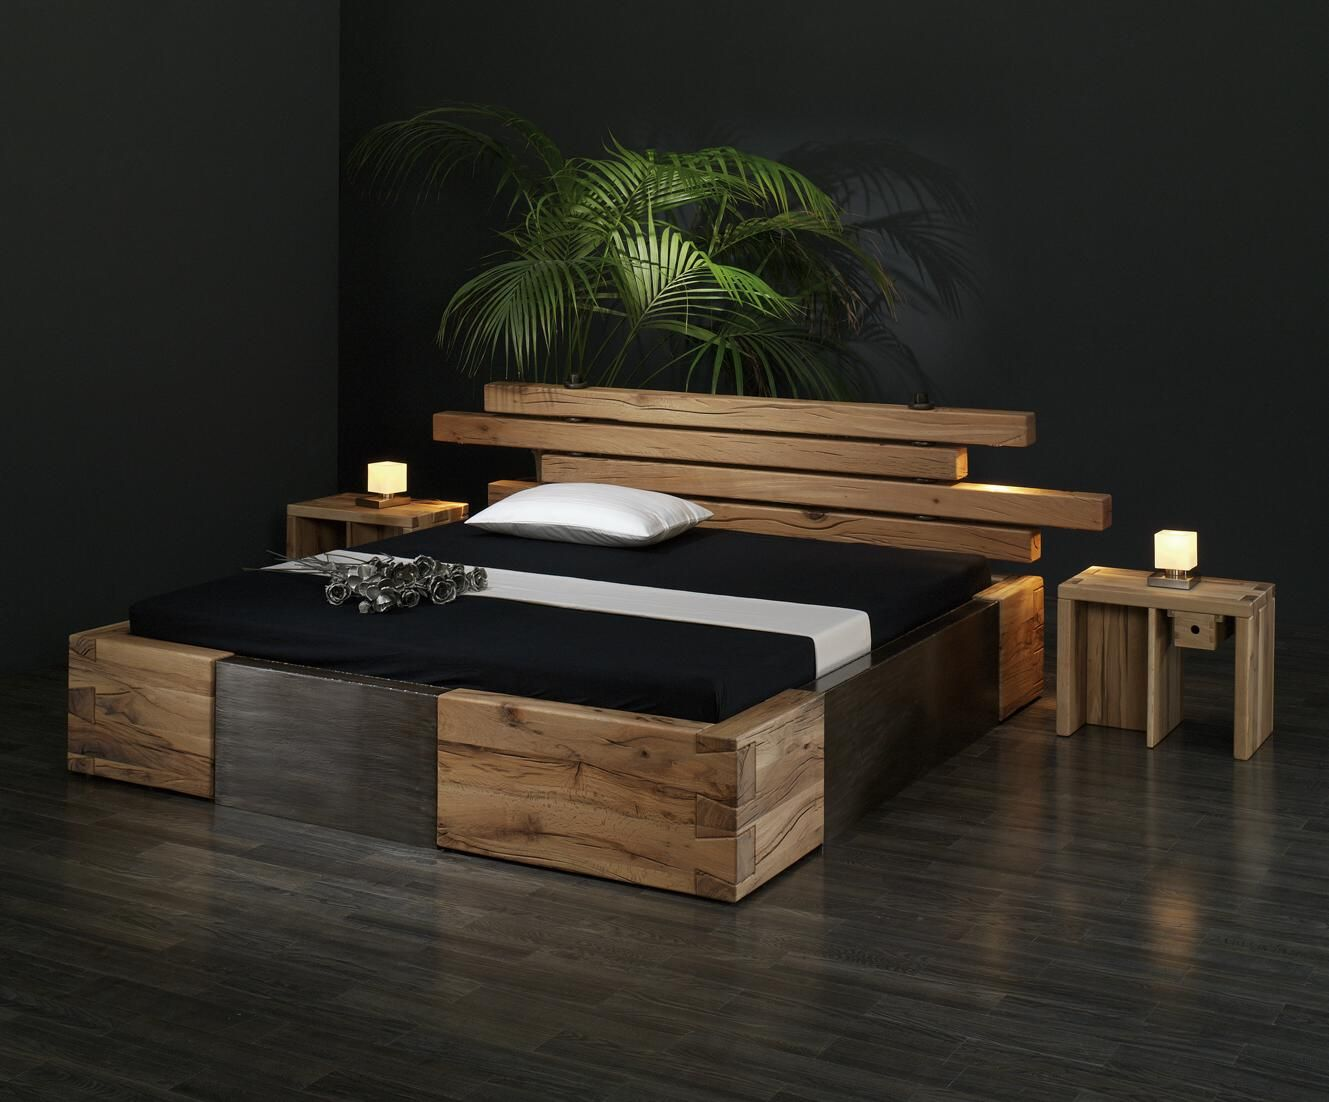 Schlafzimmer Set Naturholz Holz Bett Design Google Search Bedroom In 2019 Pinterest